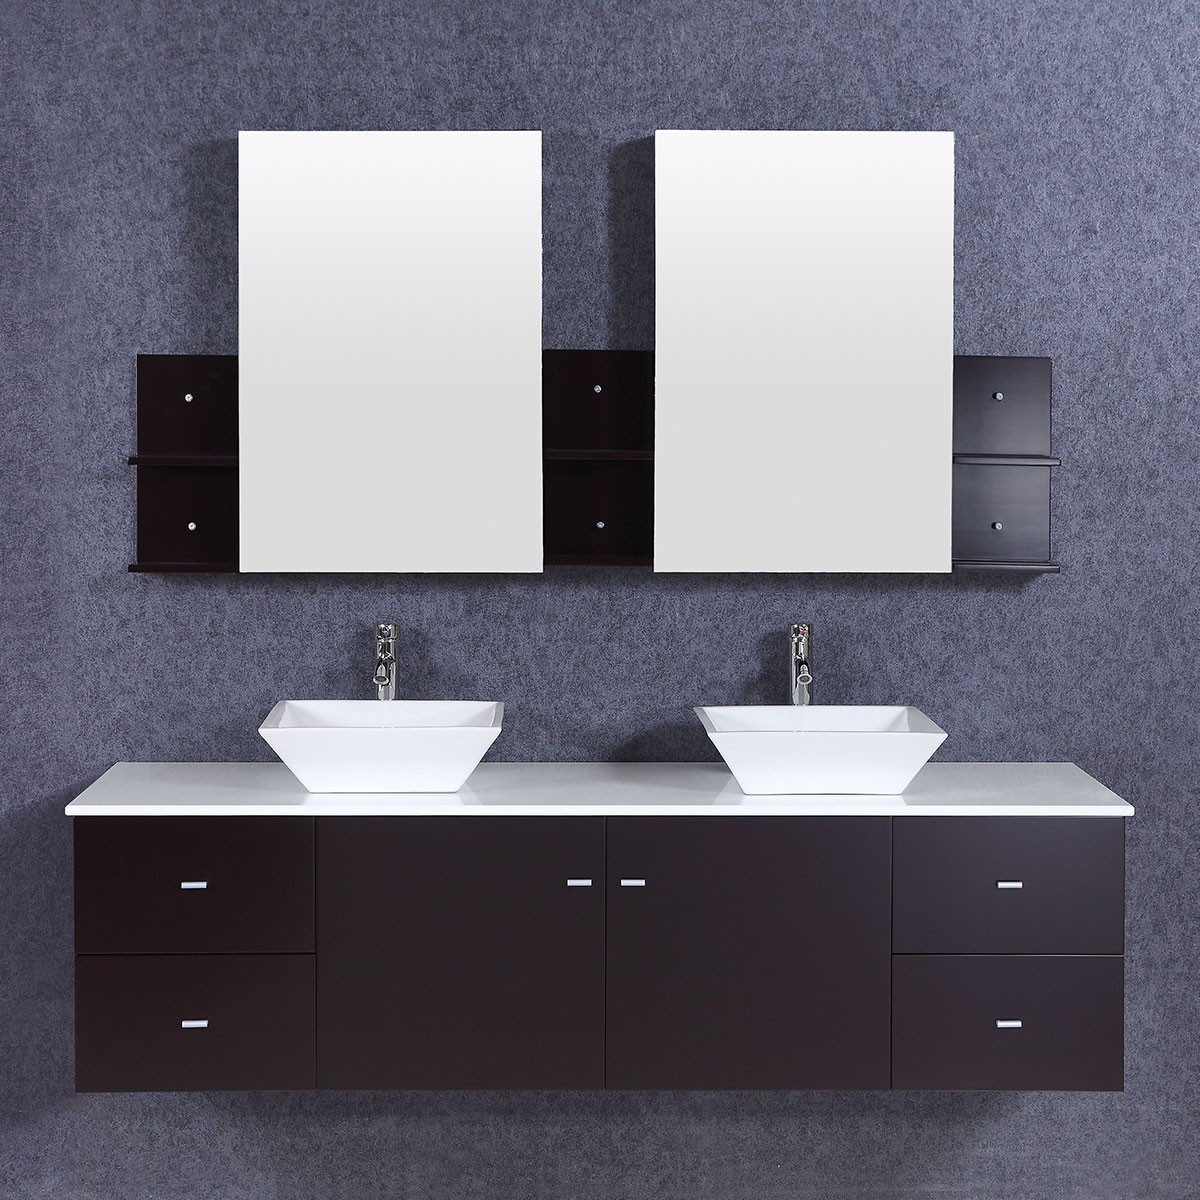 72 In. Bathroom Vanity Set with Double Sinks and Mirrors (DK-T9147)